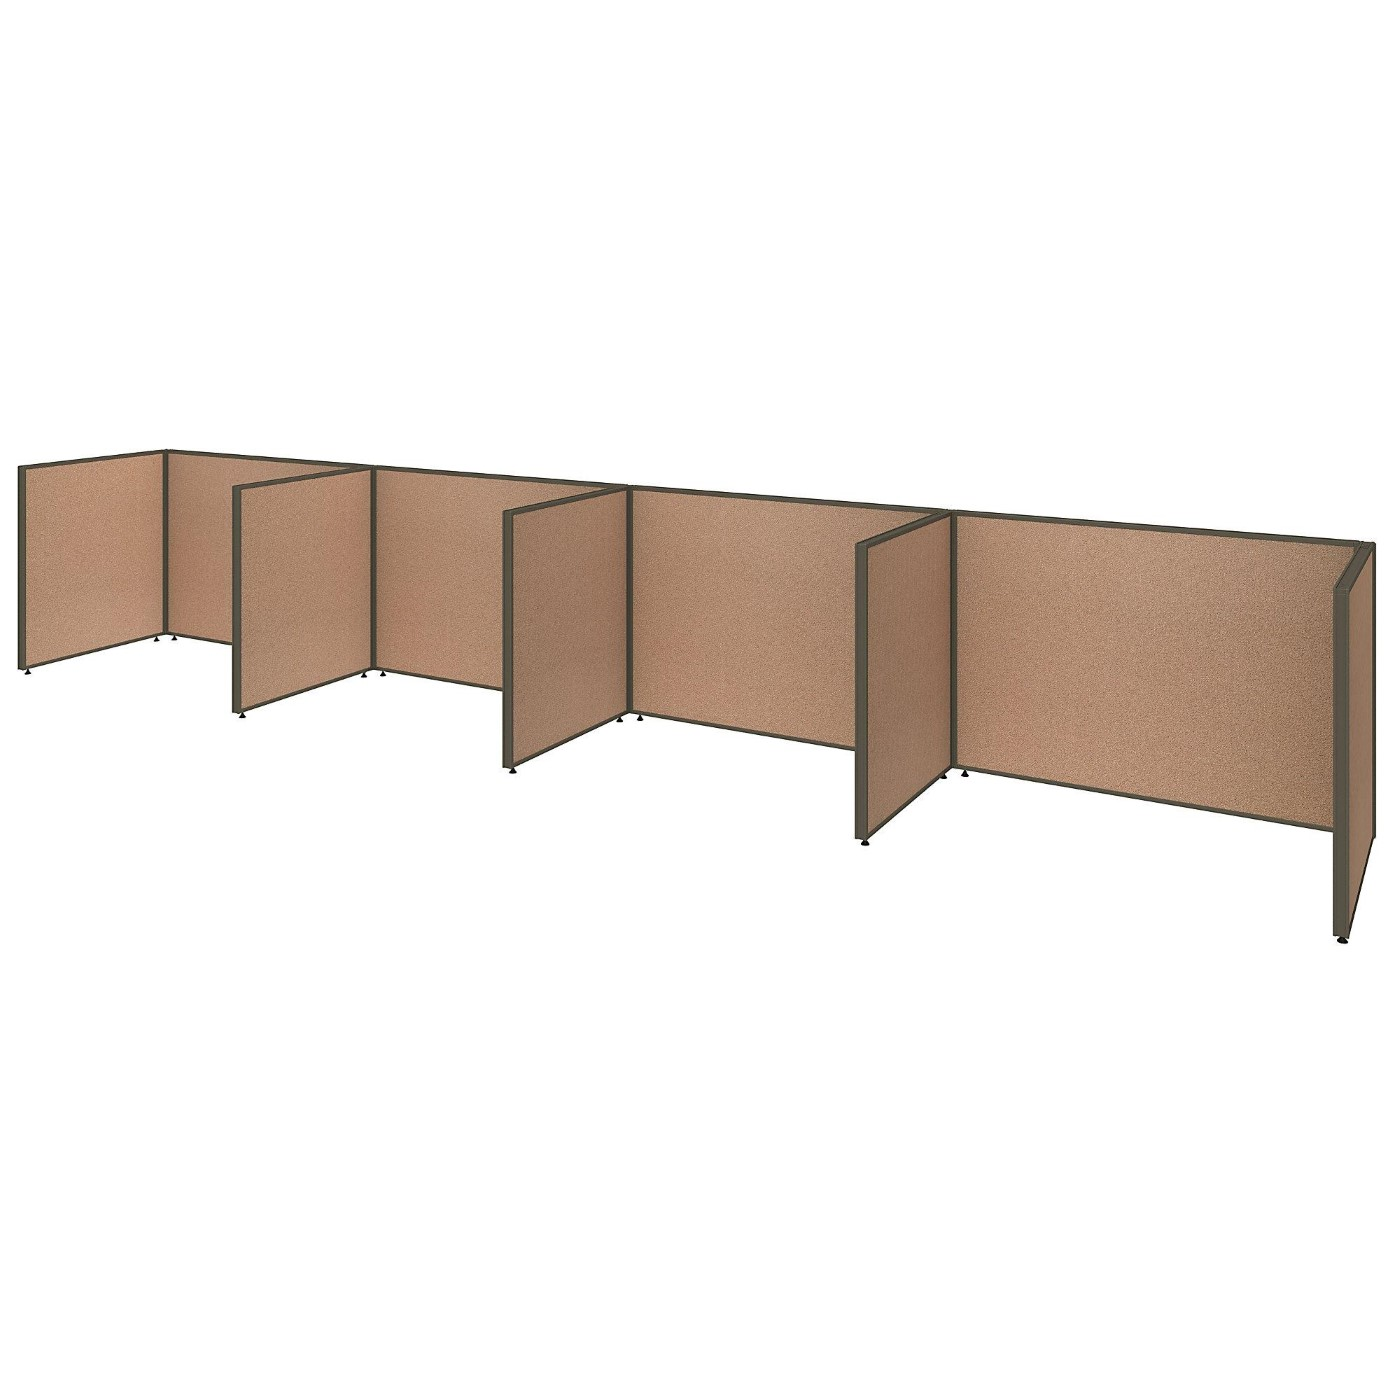 <font color=#c60><b>BUSH BUSINESS FURNITURE PROPANELS 4 PERSON OPEN CUBICLE OFFICE. FREE SHIPPING</font></b>